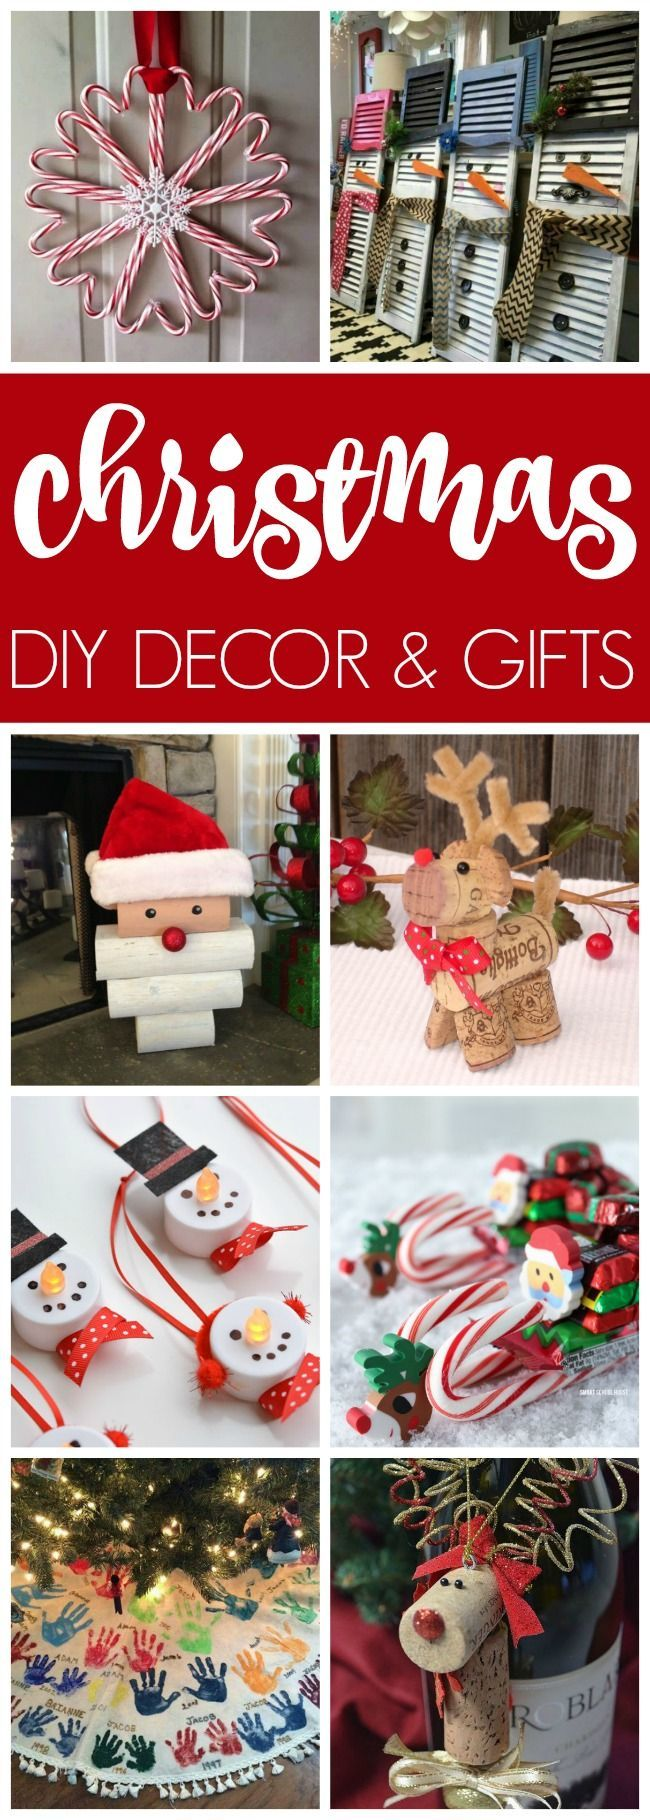 17 Epic Christmas Craft Ideas featured on Pretty My Party